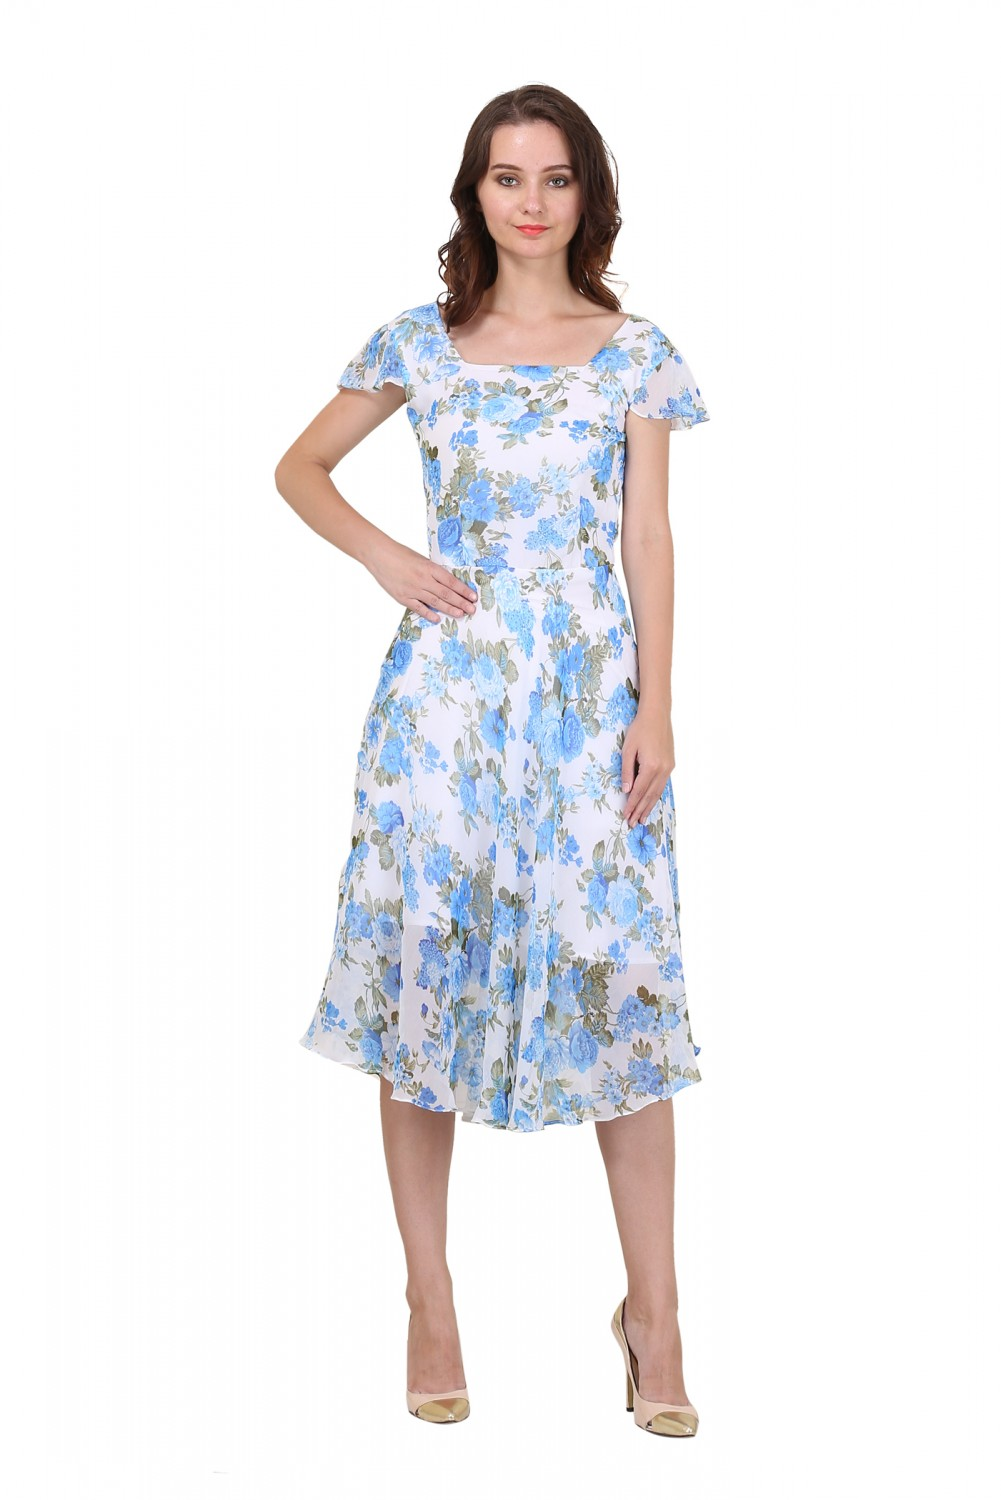 Buy New Fashion Meee Life Style Women Georgette White Blue Flower Printed Dress At 47 Off In